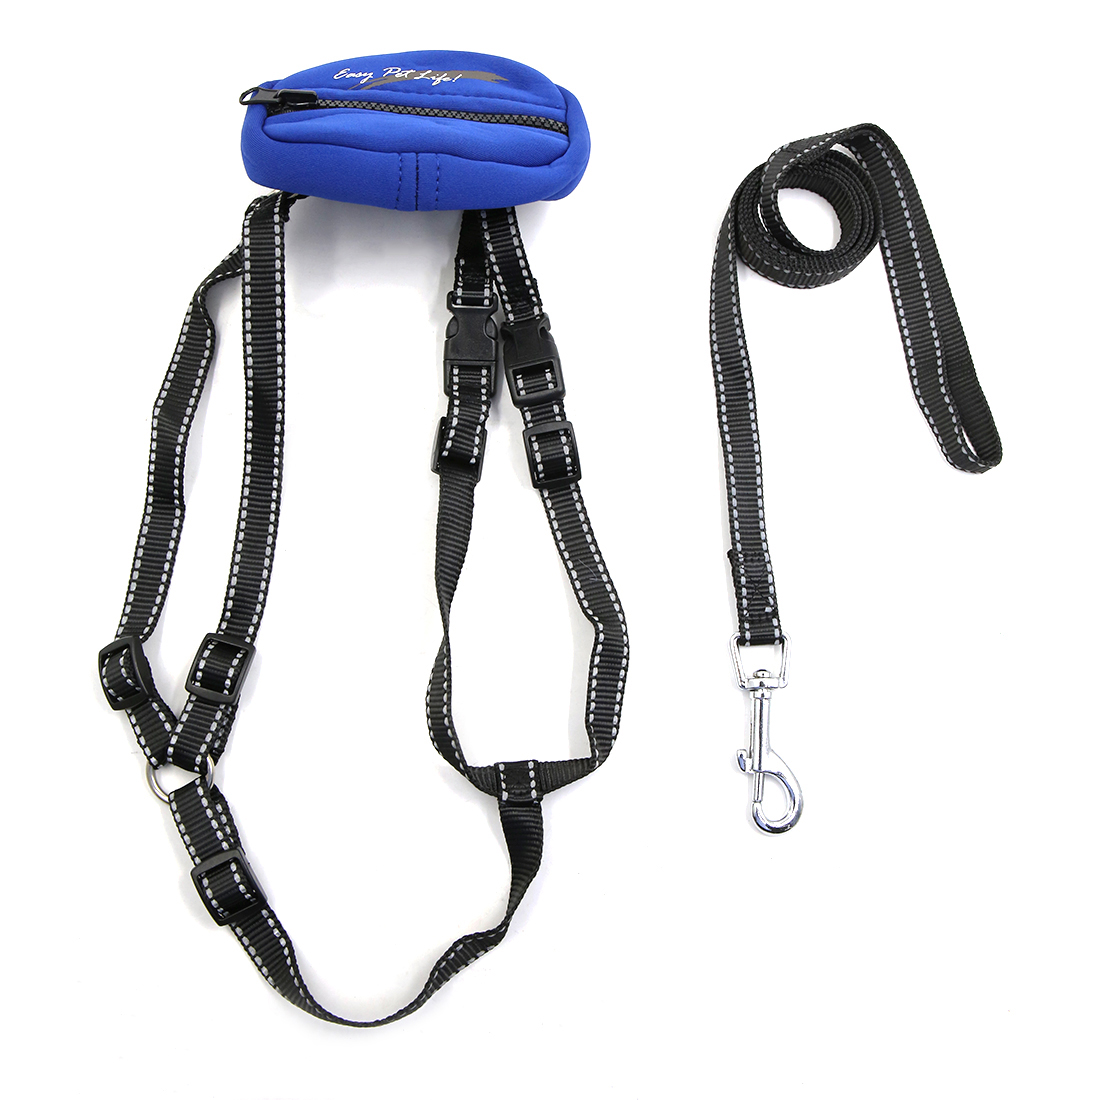 Safe Reflective Dog Harness Leash Adjustable Nylon Collar For Walking with Storage Bag Blue S